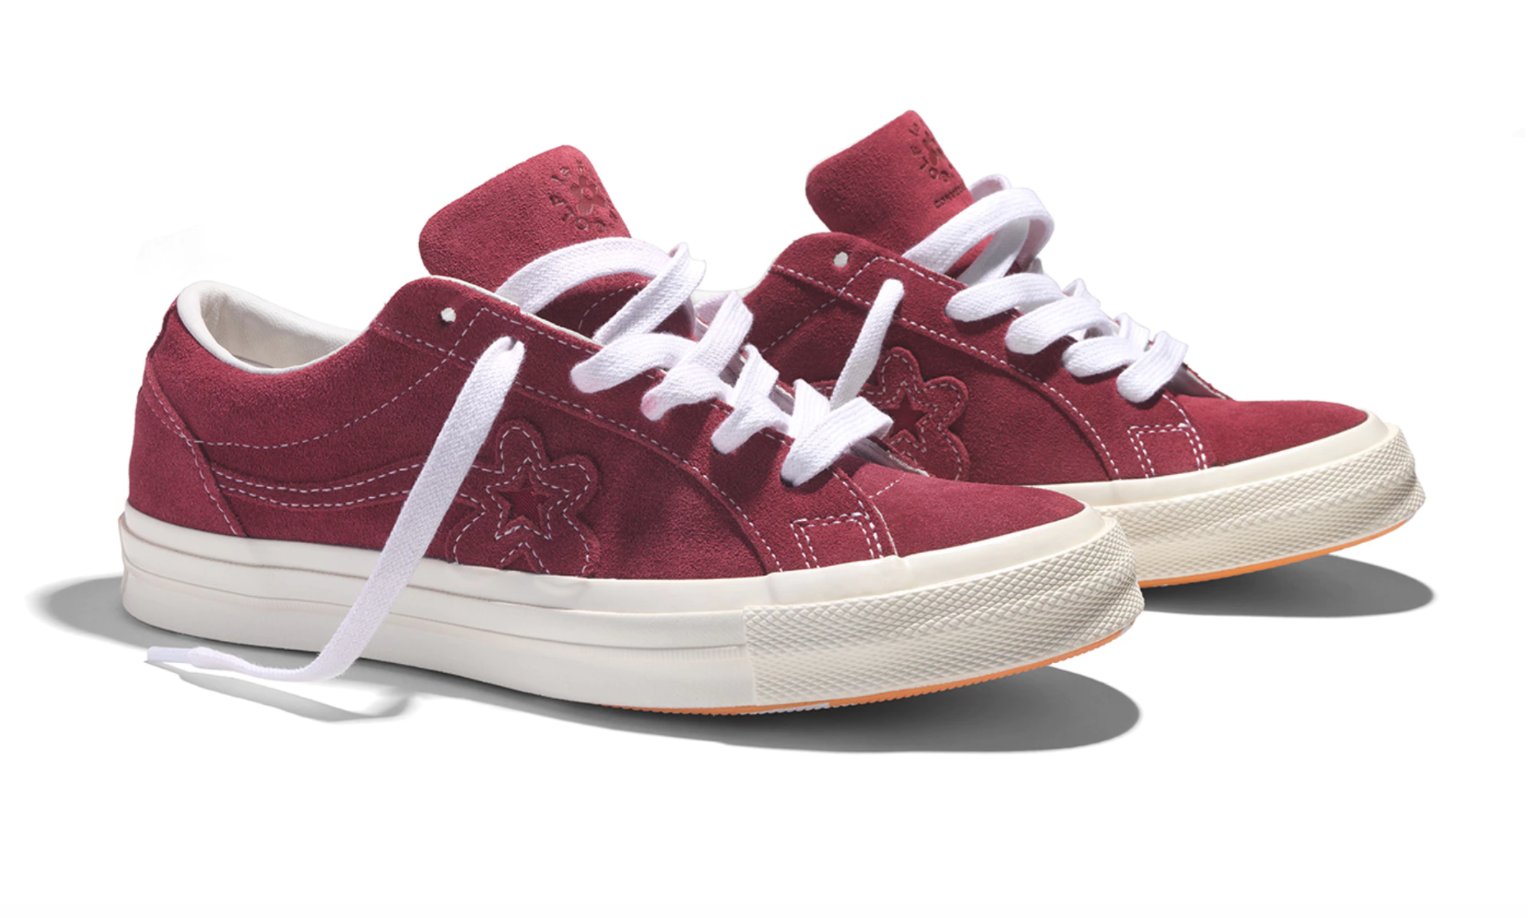 Converse And Tyler The Creator Announce New Golf Le Fleur Mono Collection Weartesters